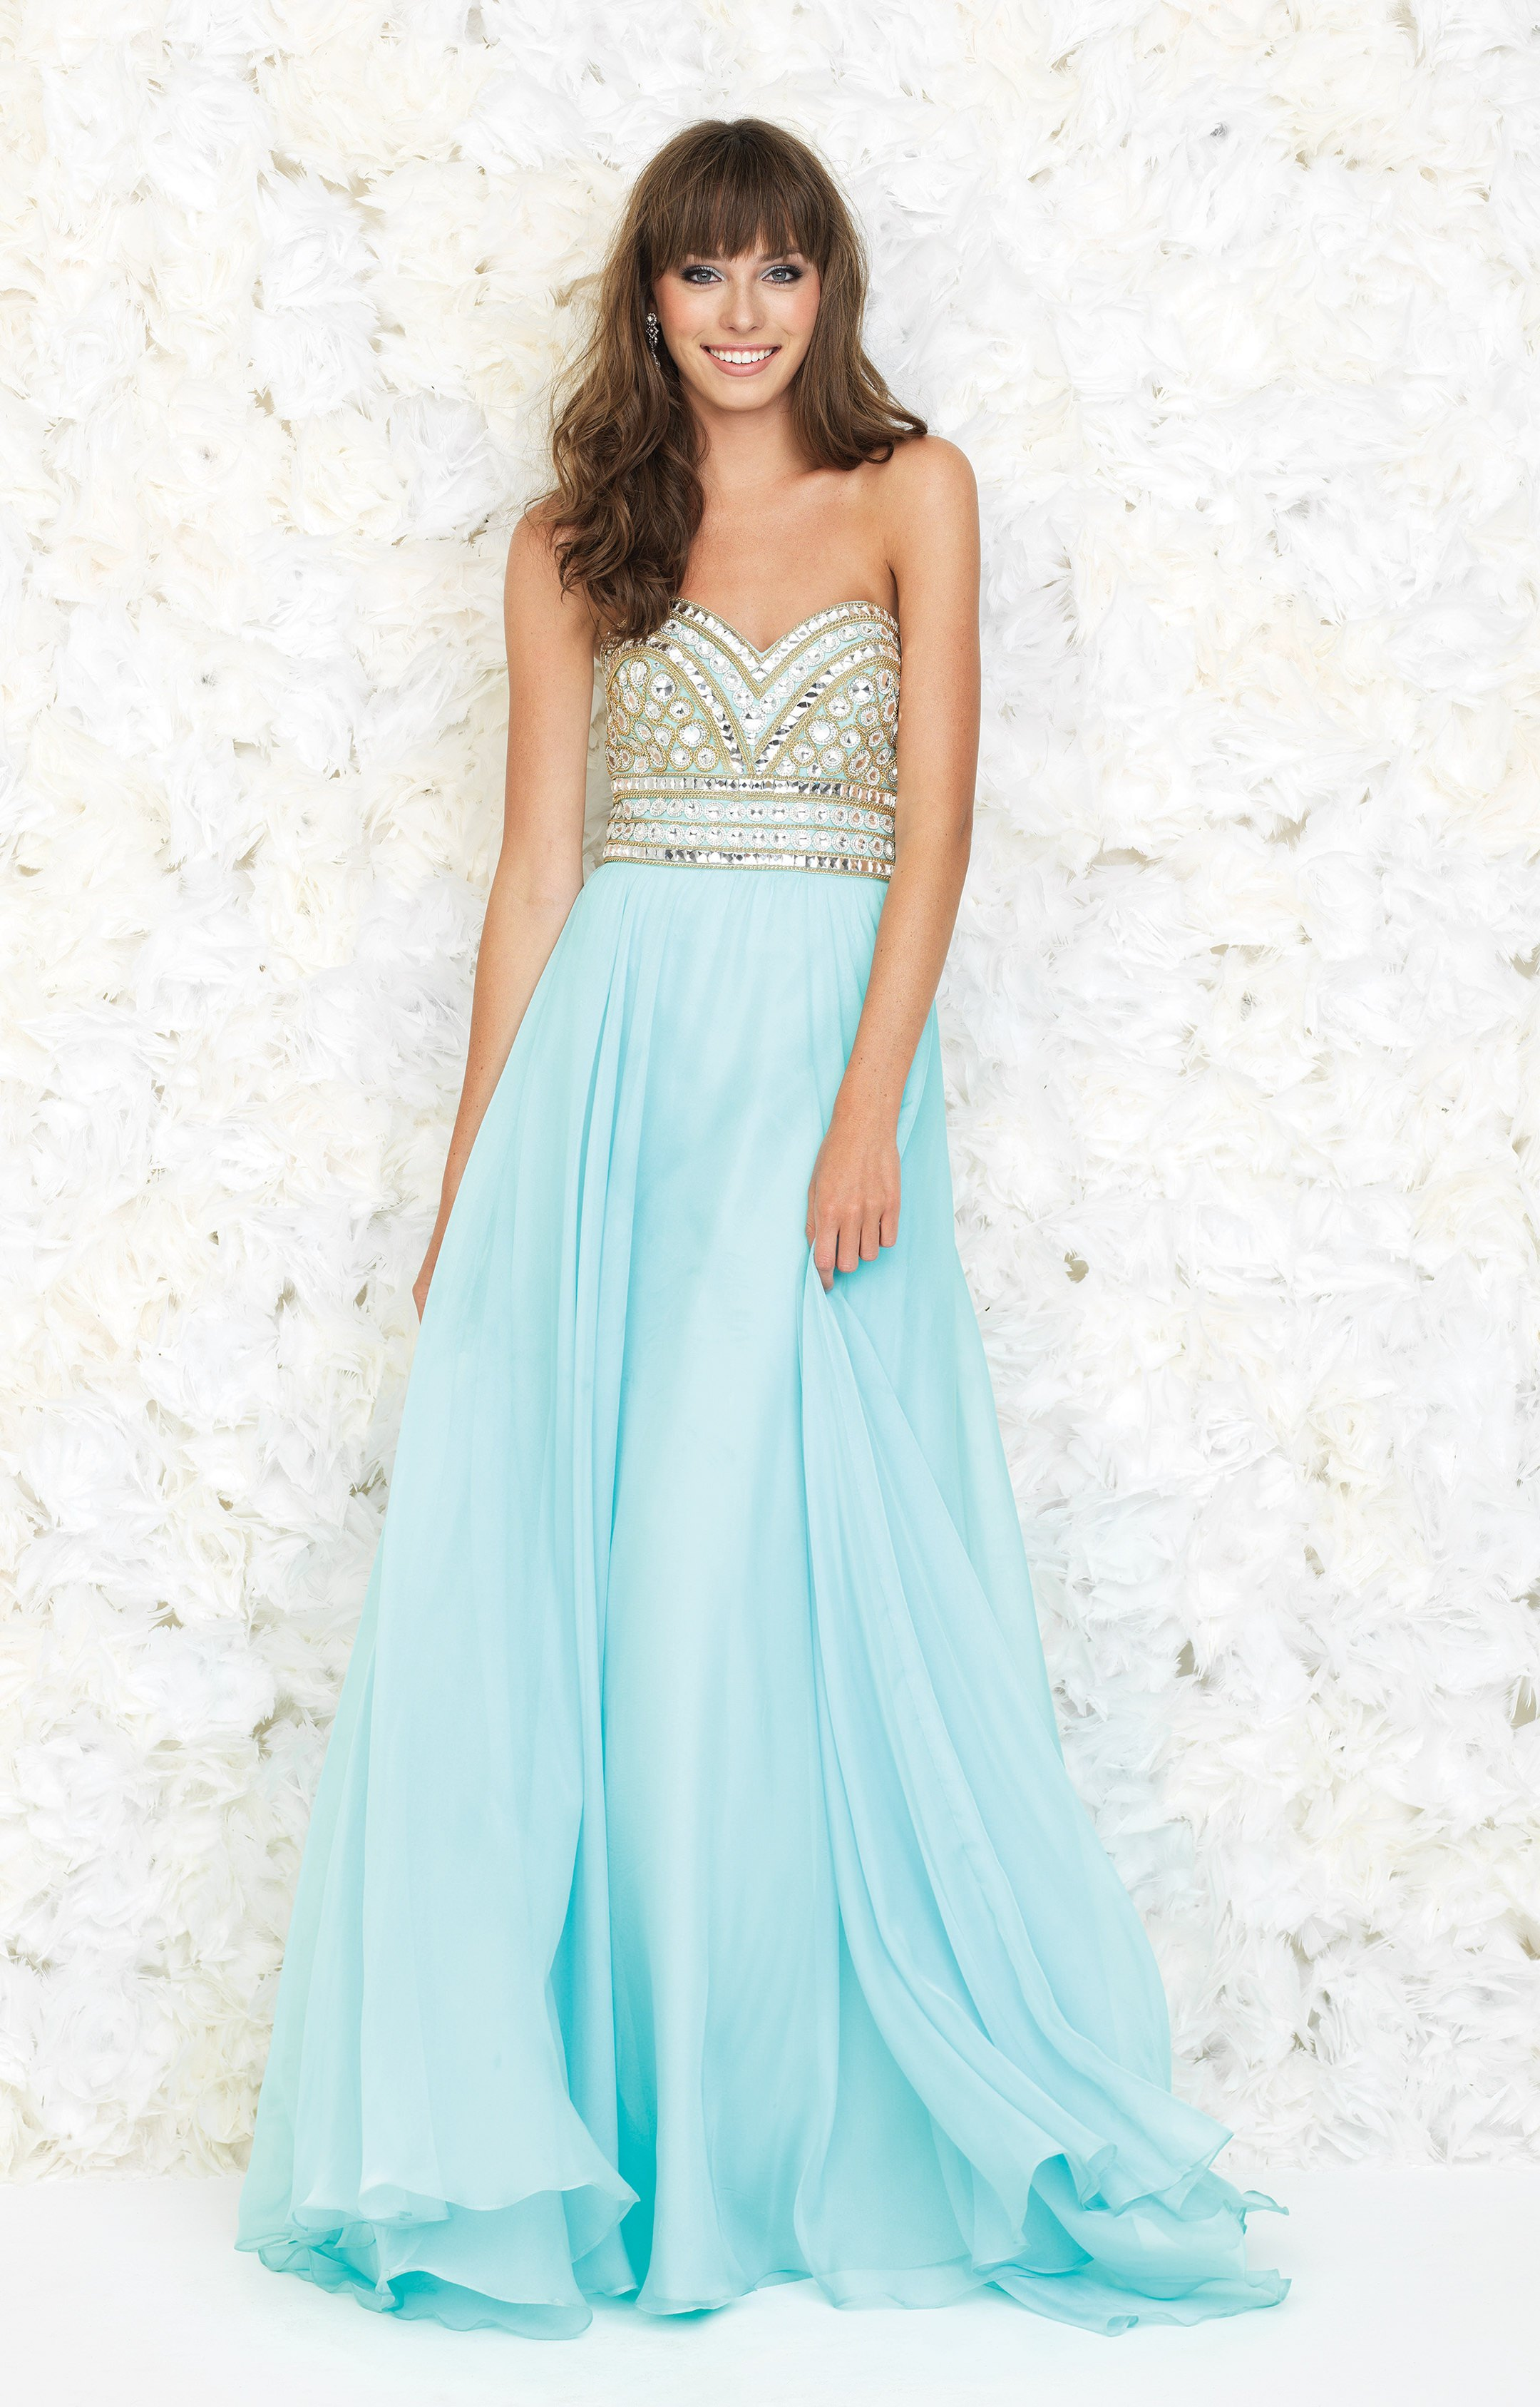 Madison James 15-116 - The Soft & Sultry Dress Prom Dress